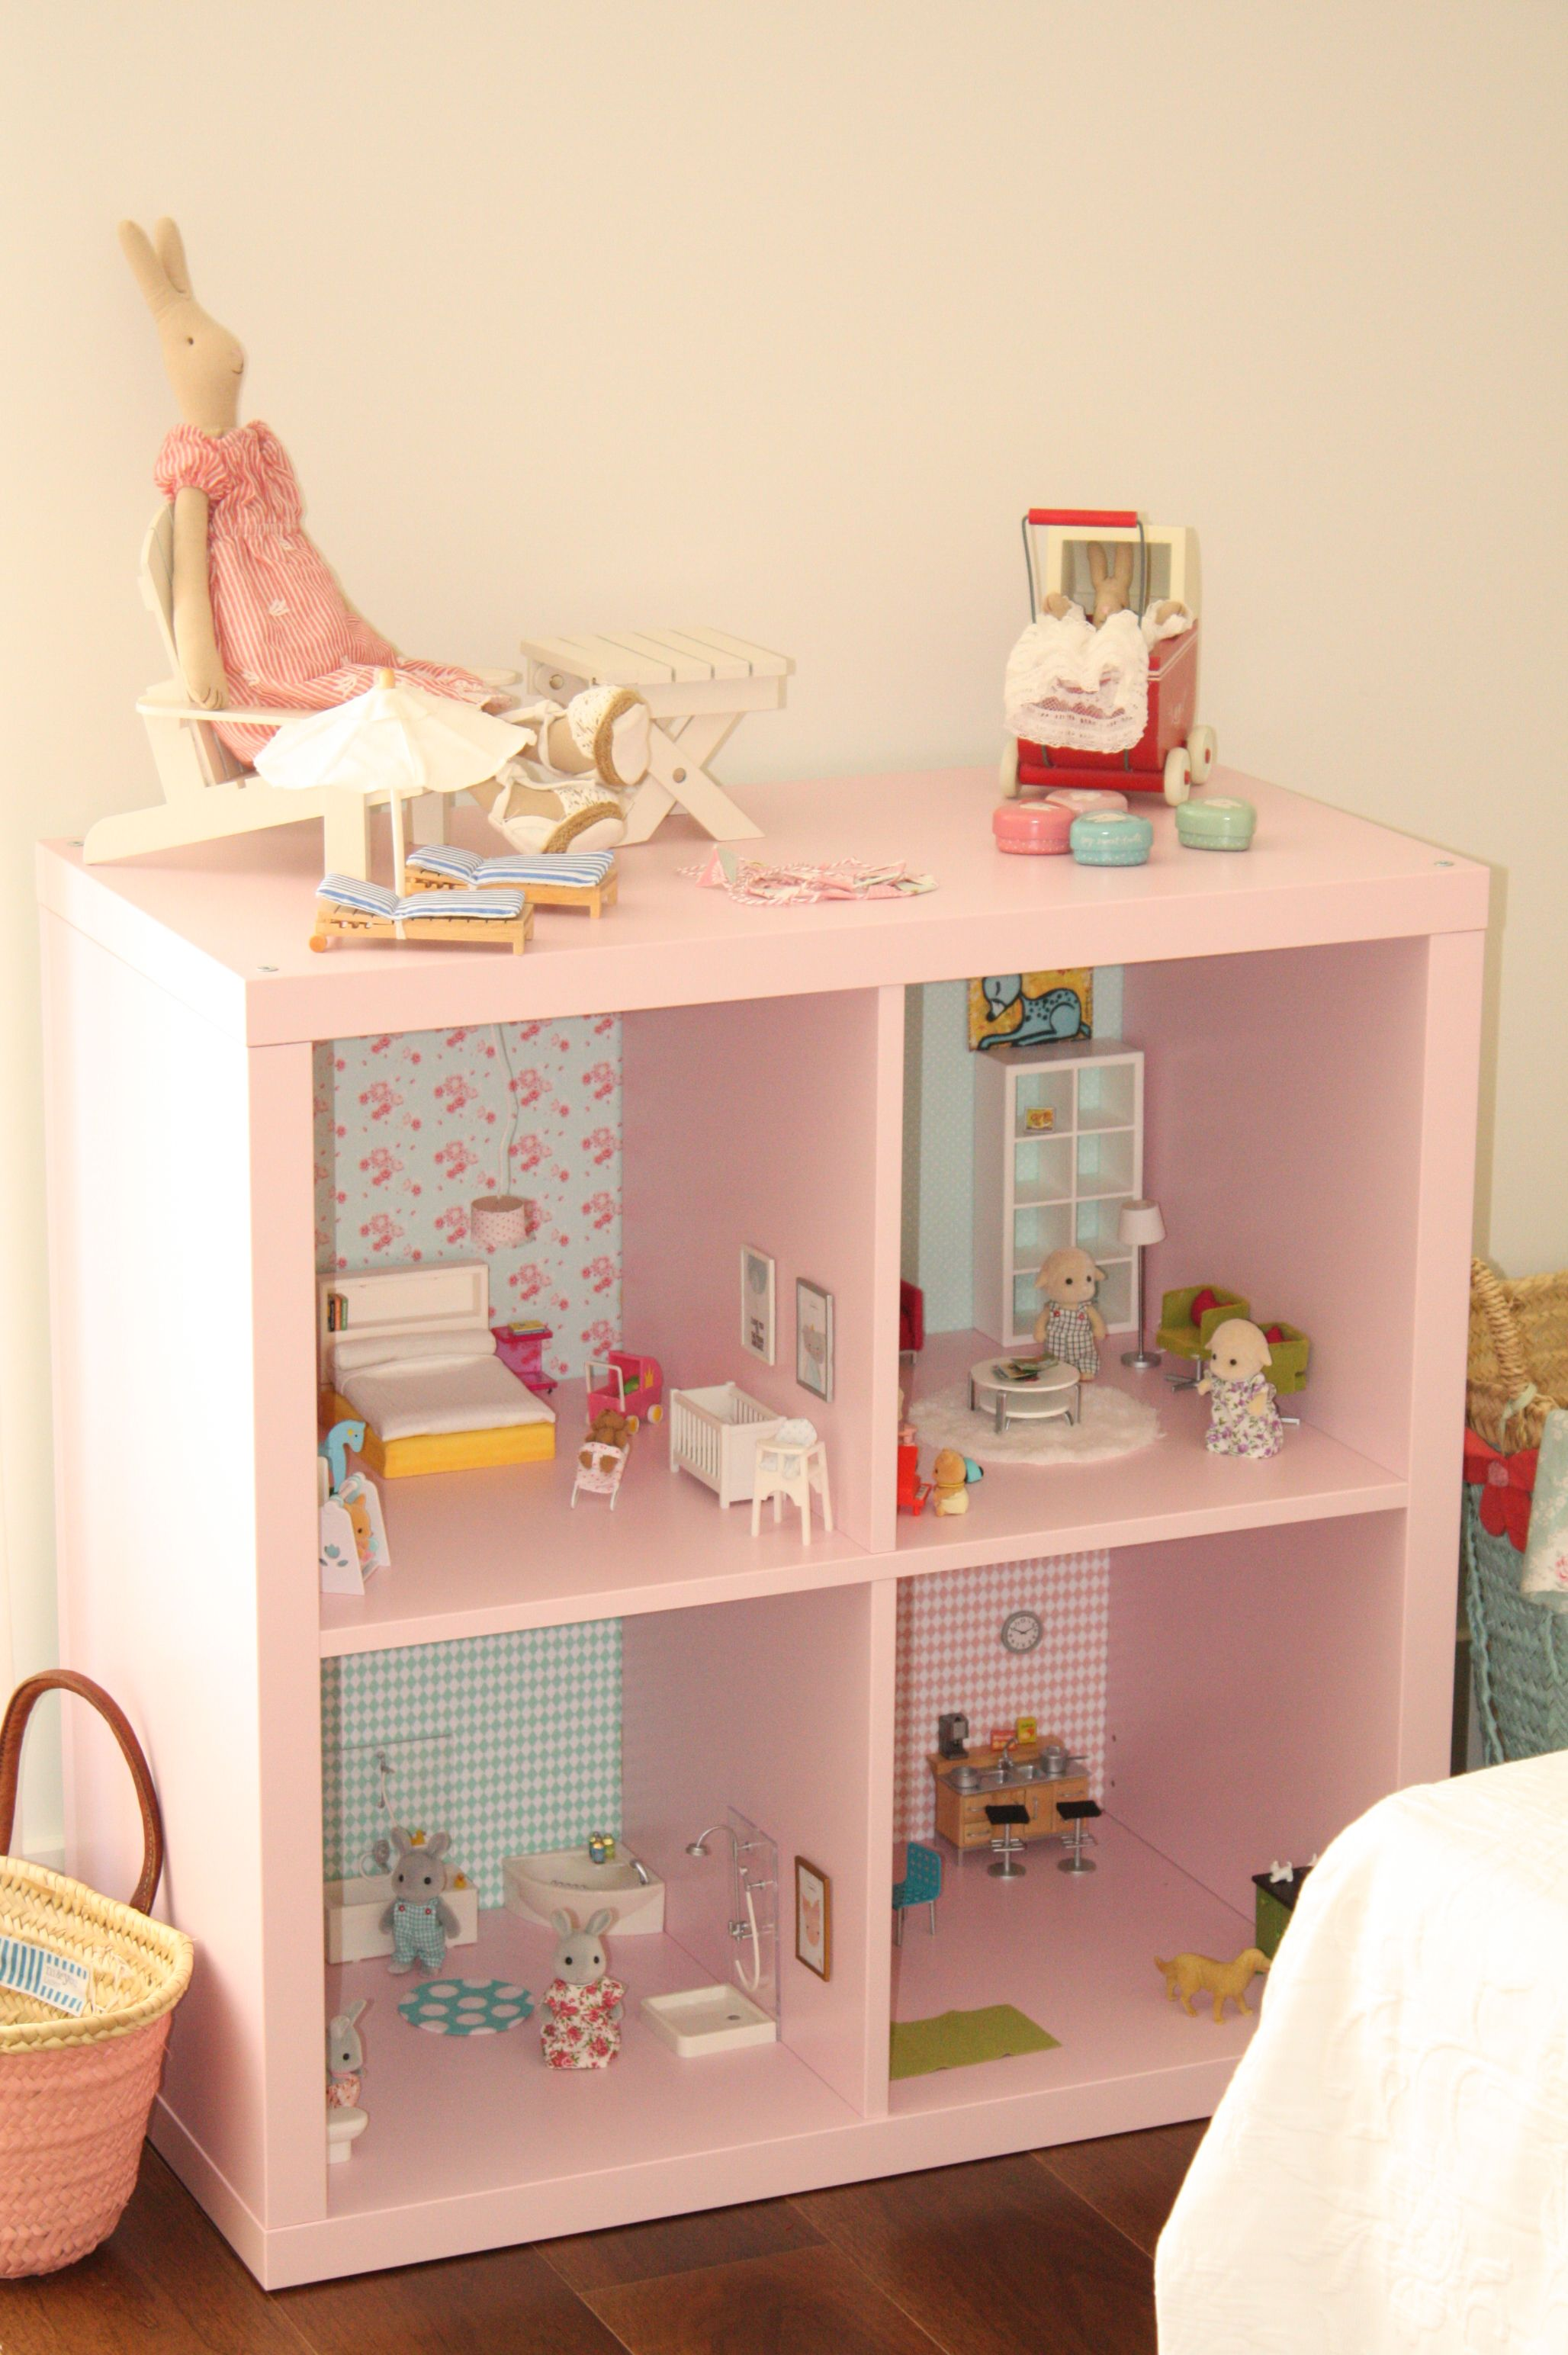 Cute Wooden Baby Gym To Diy Children Baby Kinderzimmer Baby Sylvanian Families Dollhouse Ikea Cube Turning Into A Doll